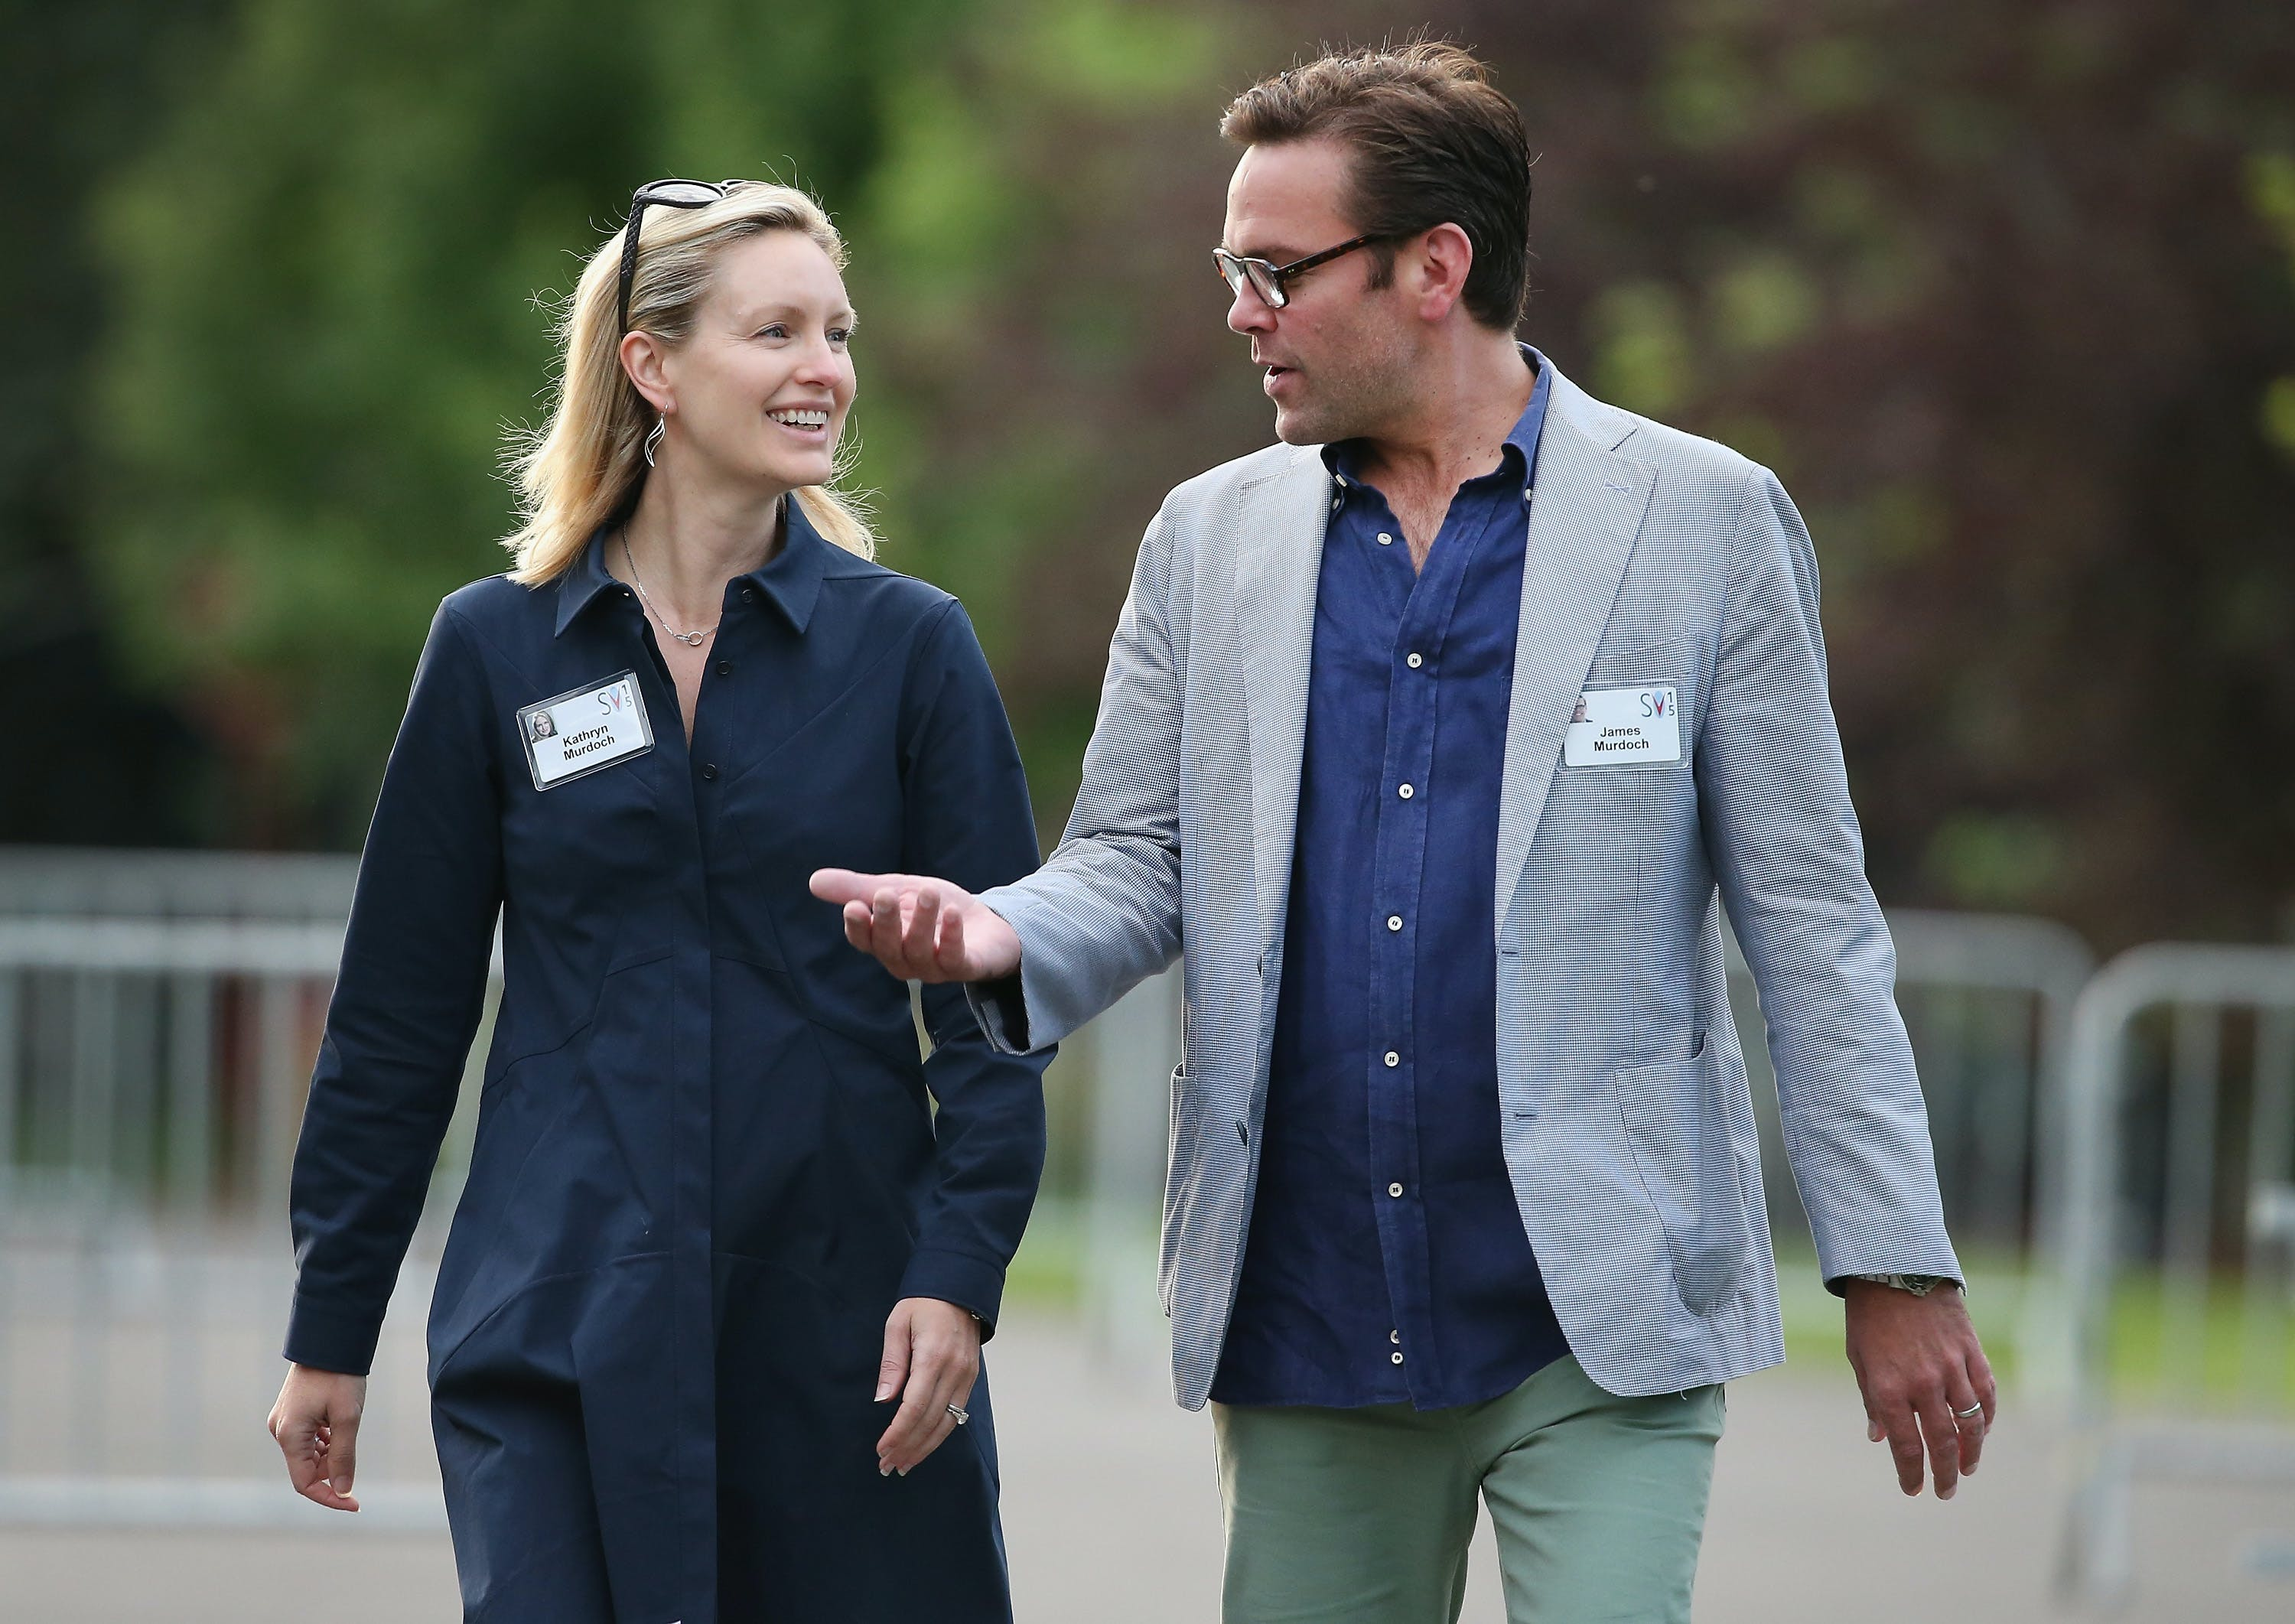 SUN VALLEY, ID - JULY 10: James Murdoch, chief executive officer of 21st Century Fox, and his wife Kathryn attend the Allen & Company Sun Valley Conference on July 10, 2015 in Sun Valley, Idaho. Many of the worlds wealthiest and most powerful business people from media, finance, and technology attend the annual week-long conference which is in its 33rd year. (Photo by Scott Olson/Getty Images)